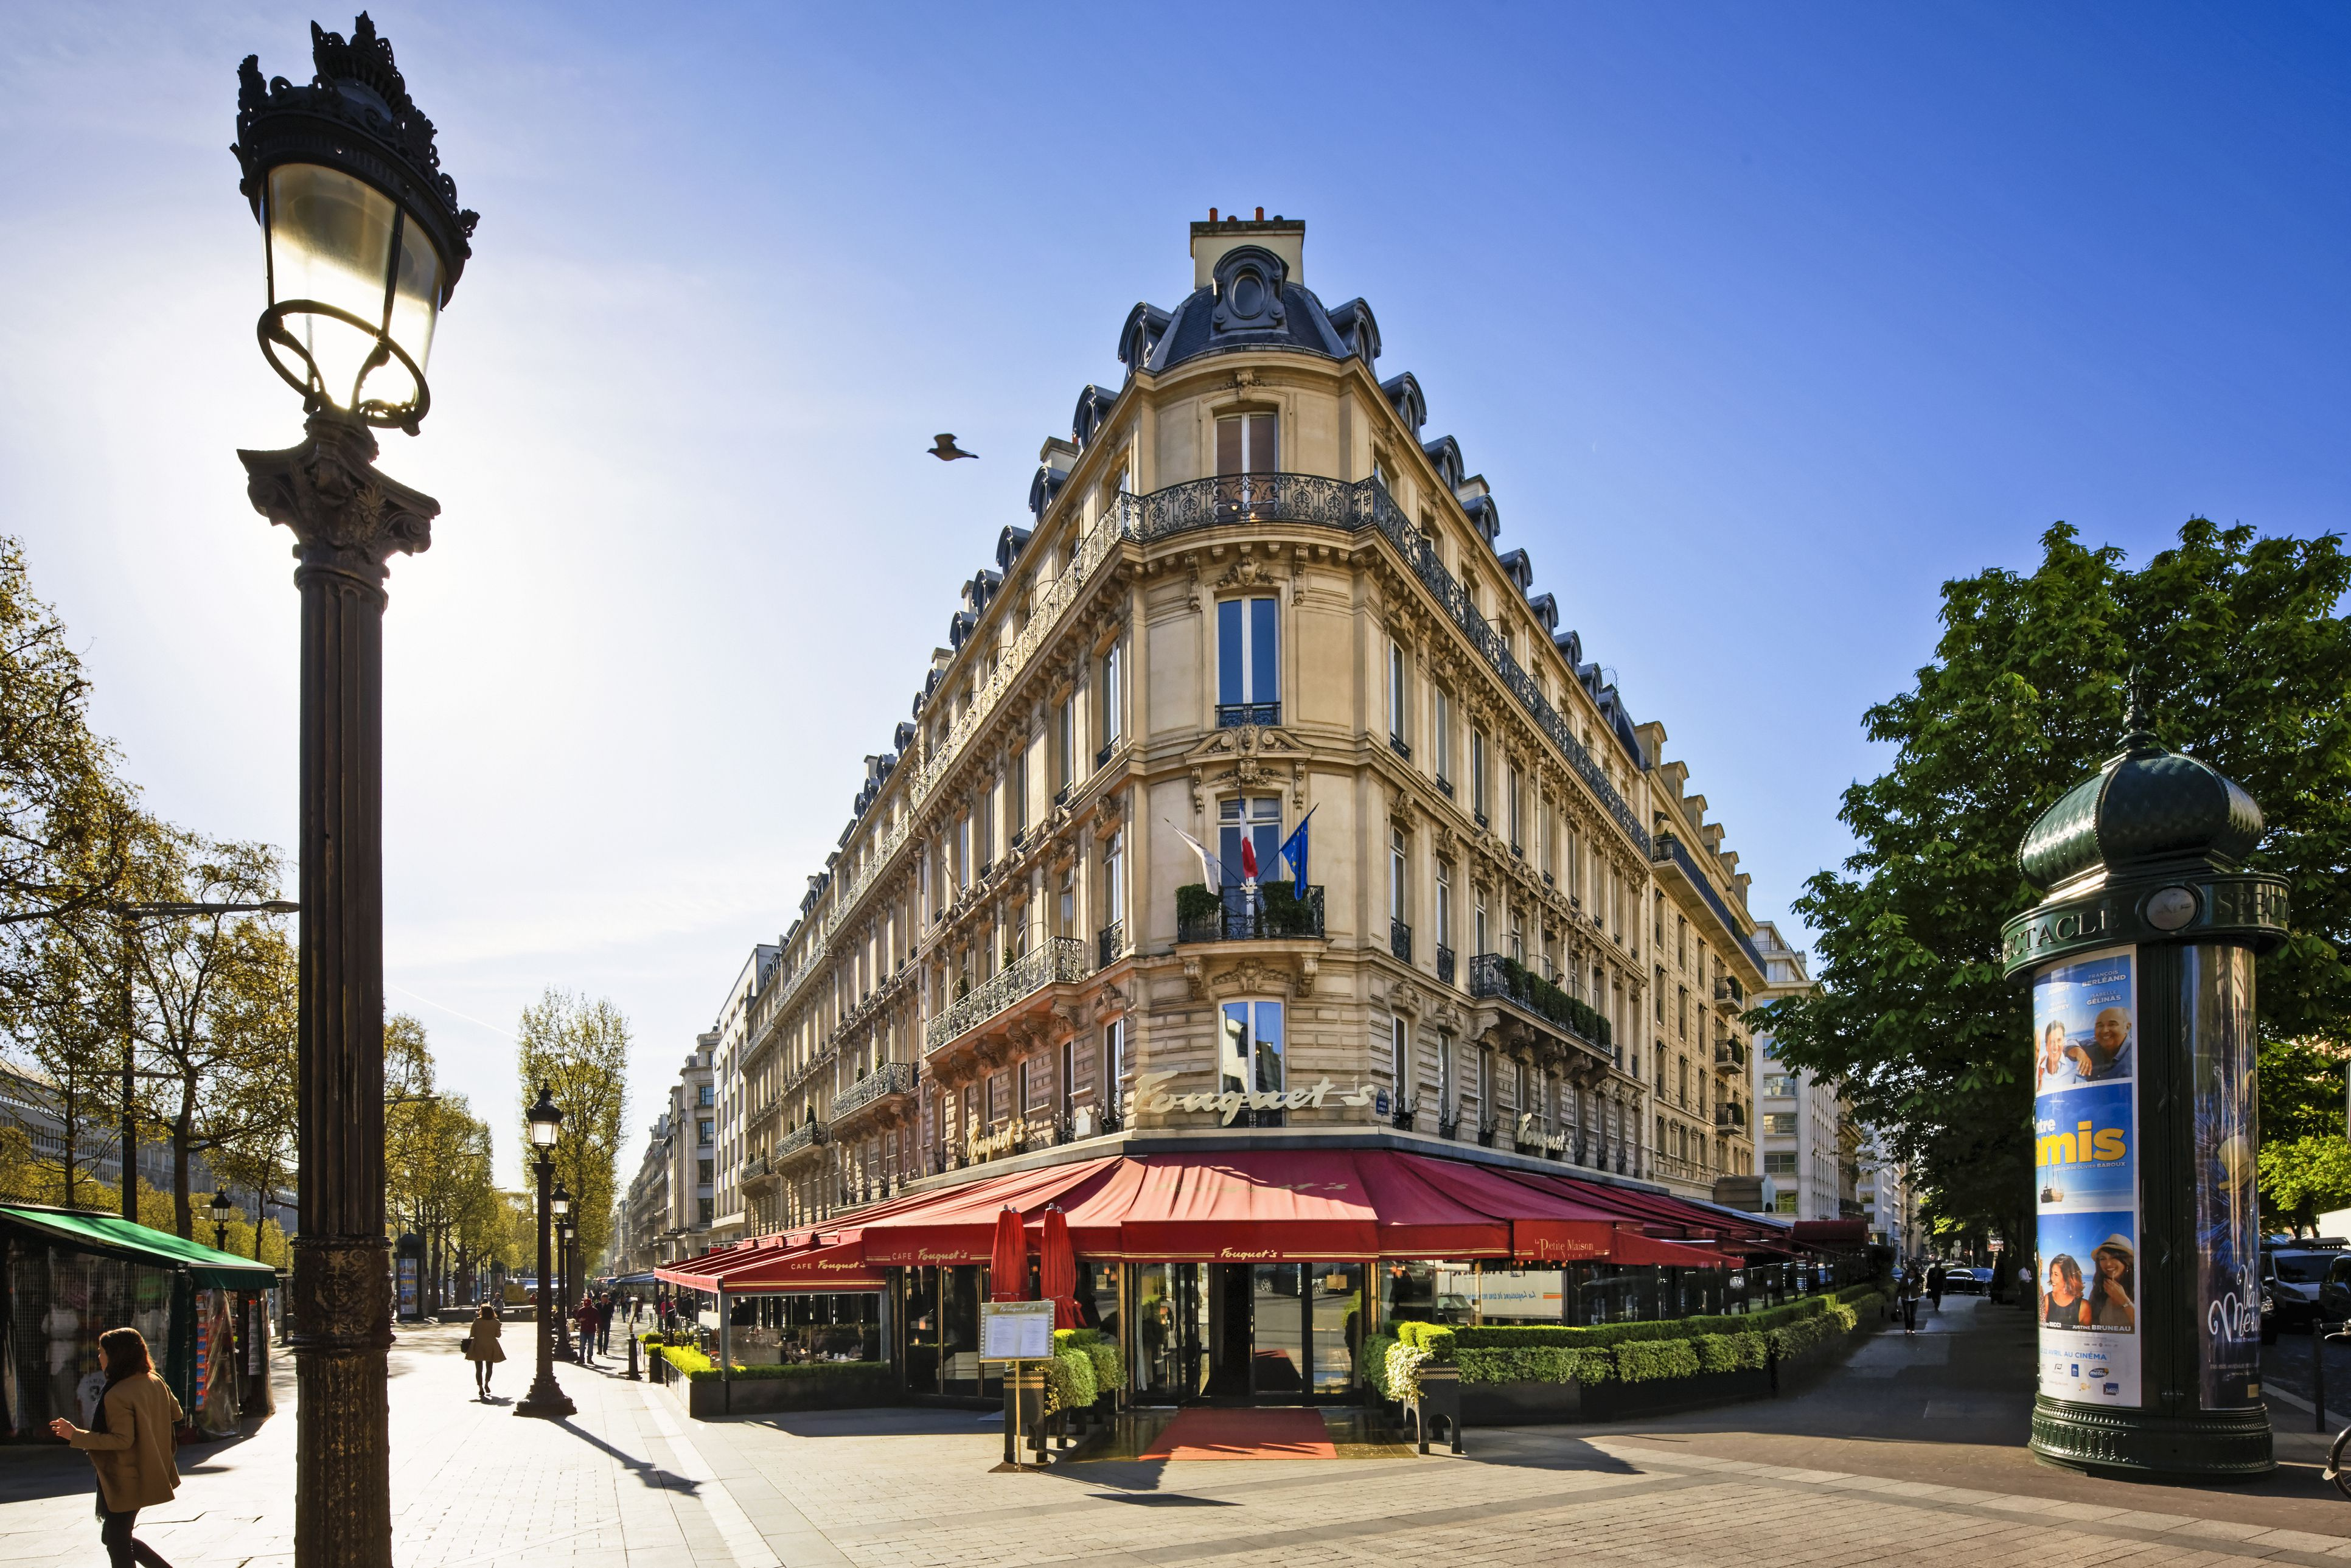 Avenue des Champs Elysees en Paris